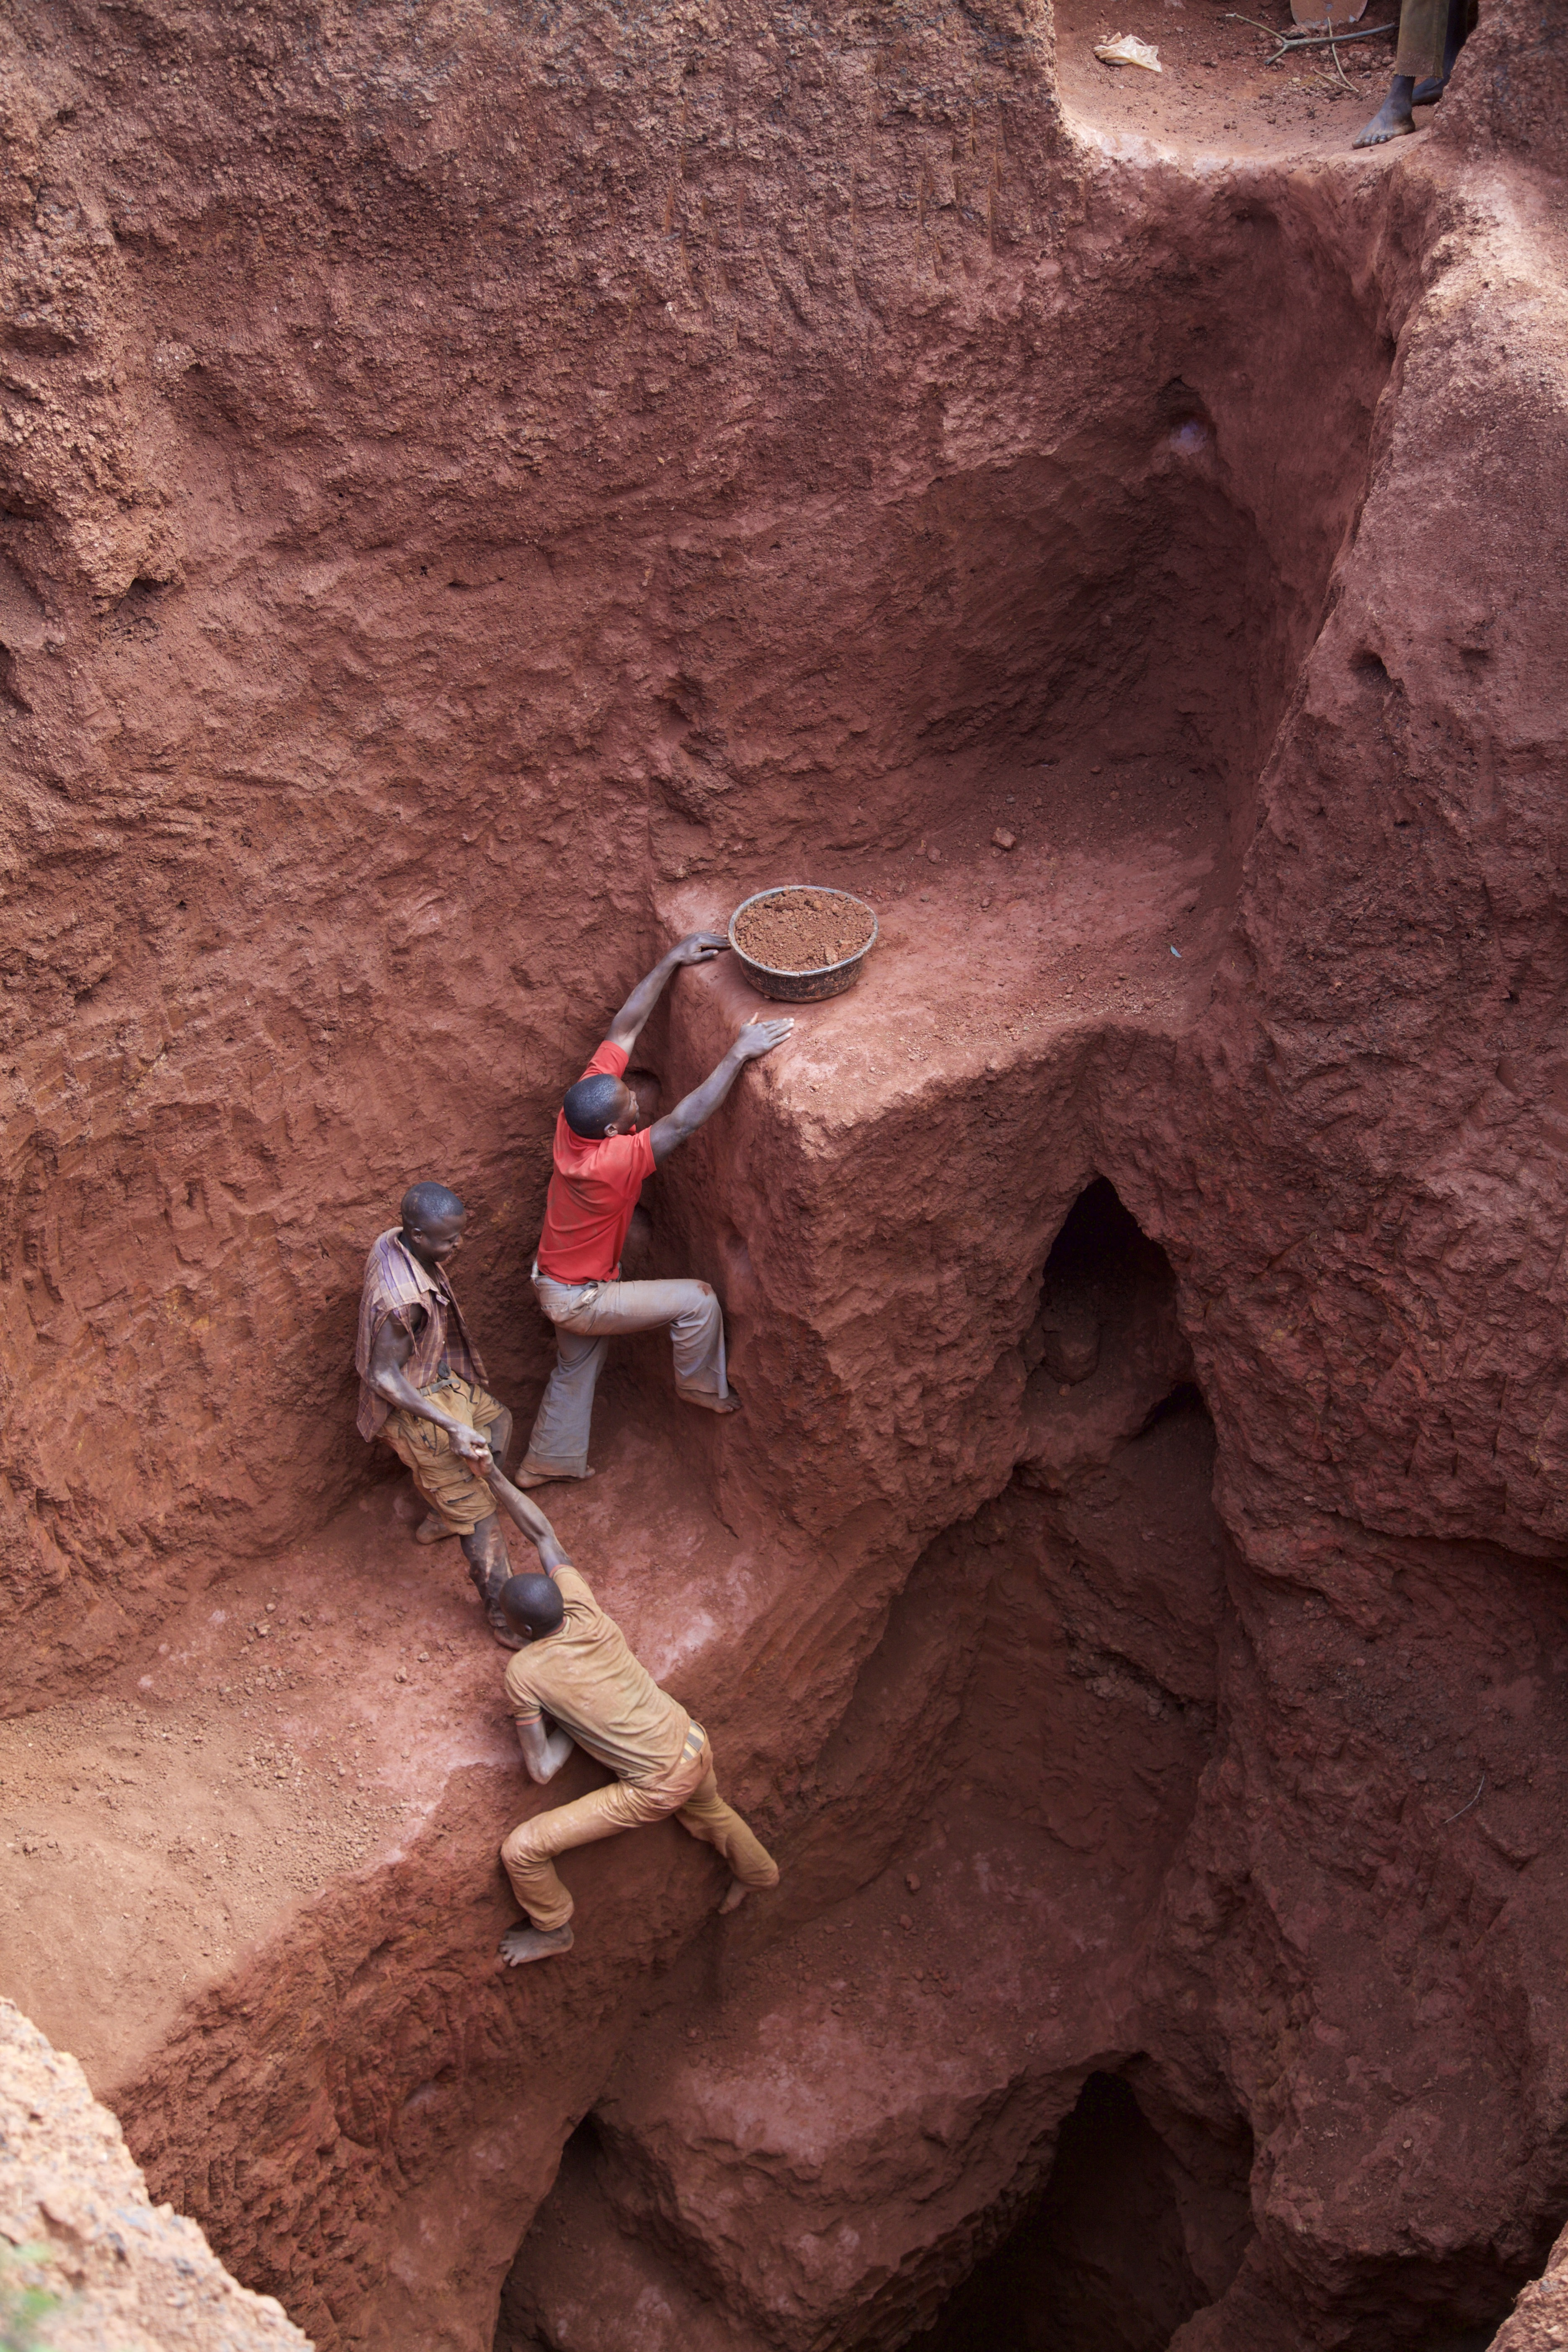 Artisanal smallscale mining is the second biggest employer in Africa, but is highly dangerous